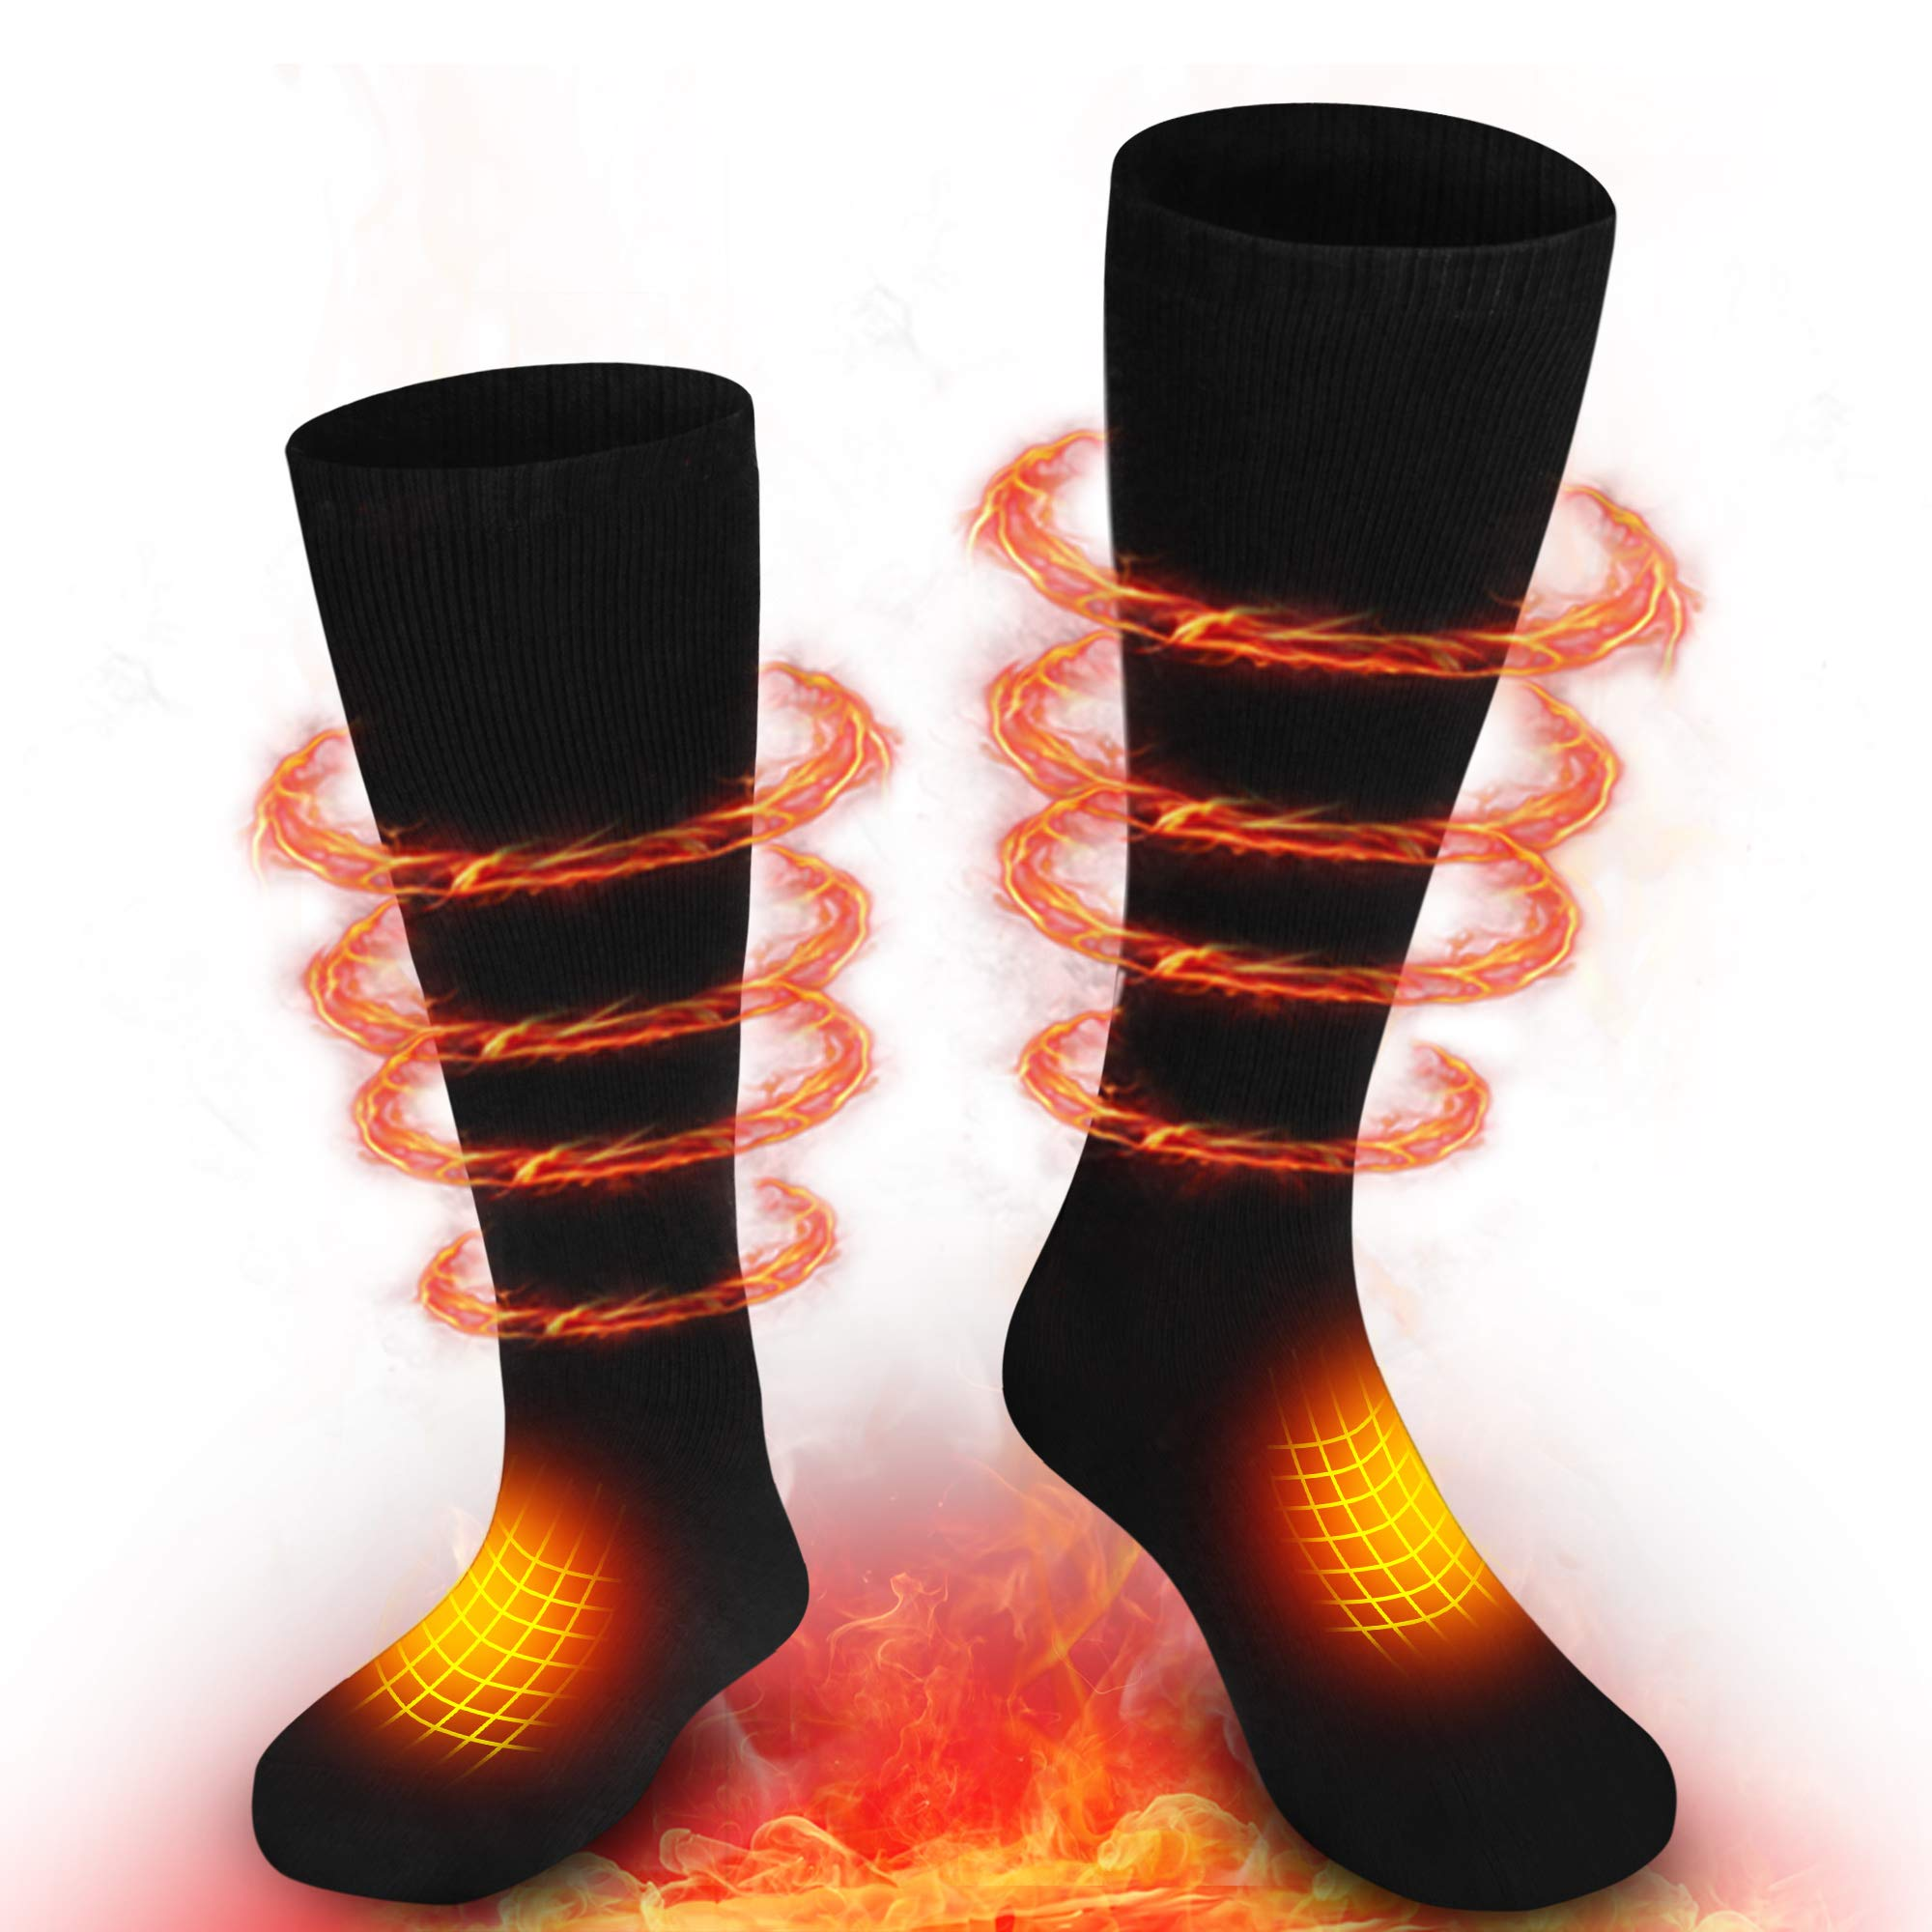 GLOBAL VASION Electric Heated Socks with Rechargeable Battery for Chronically Cold Feet (BlackM) by GLOBAL VASION